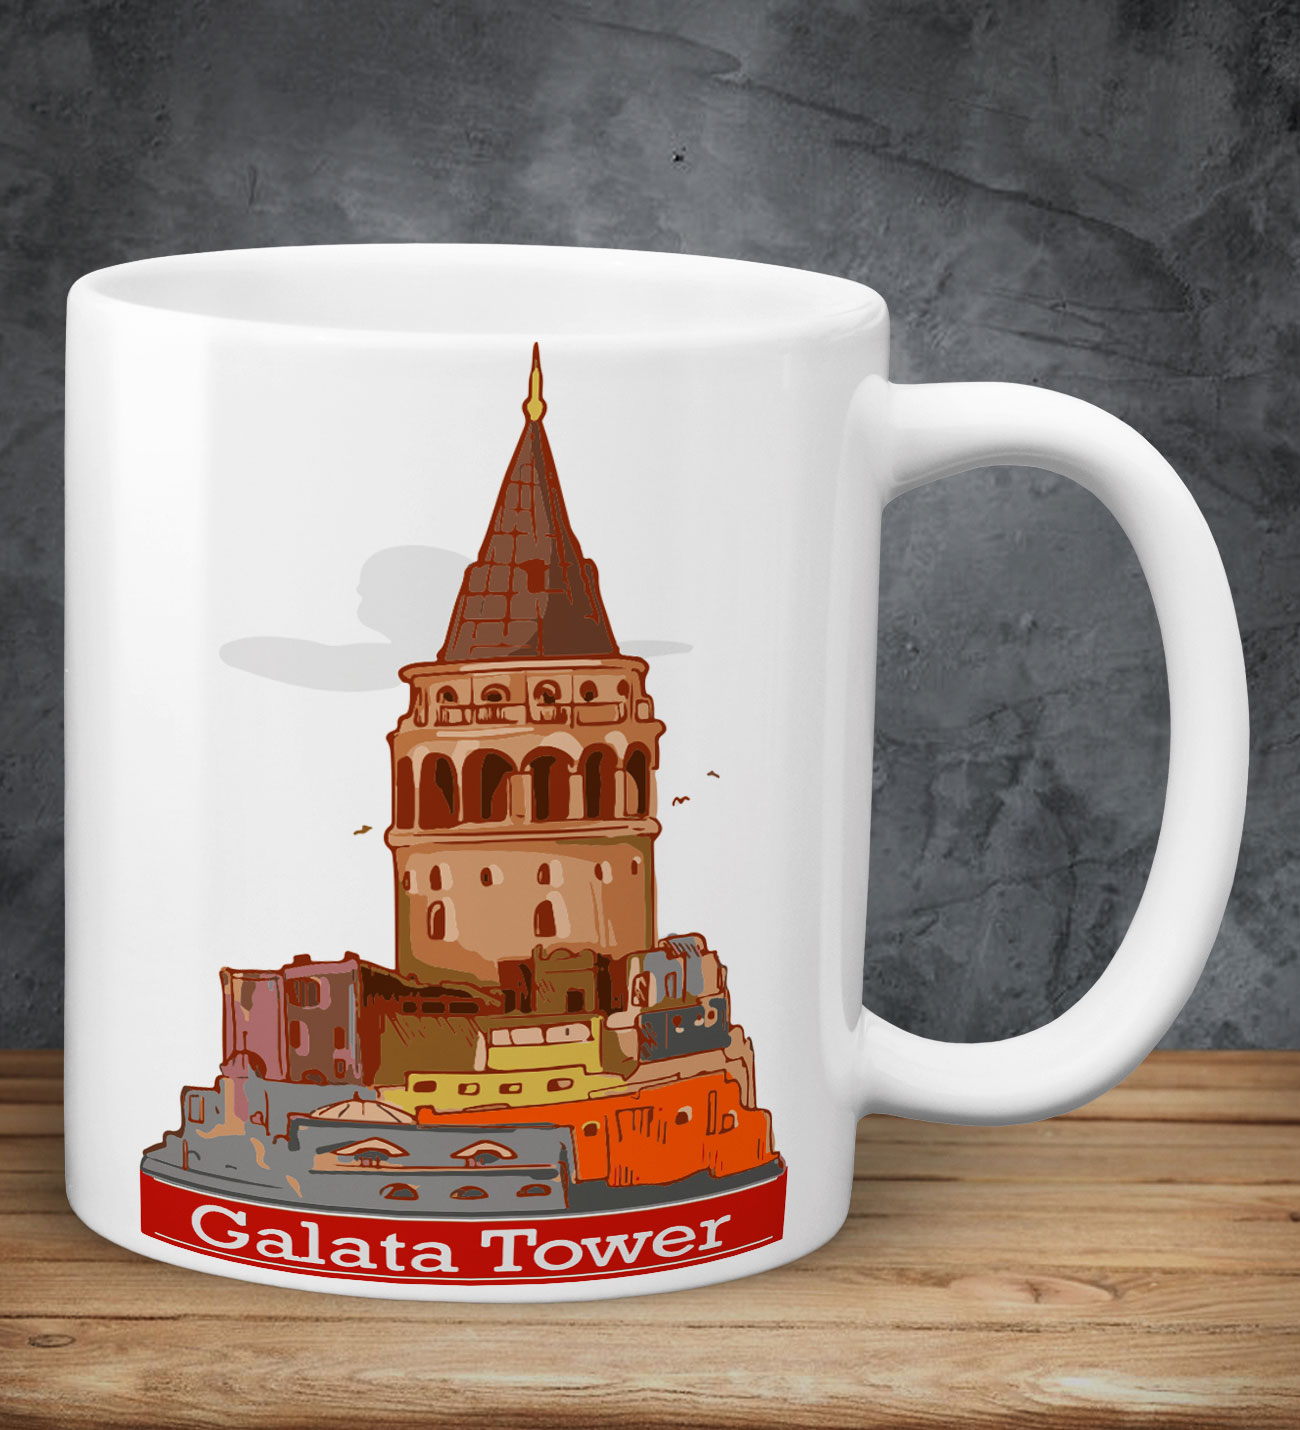 Galata Tower Kupa